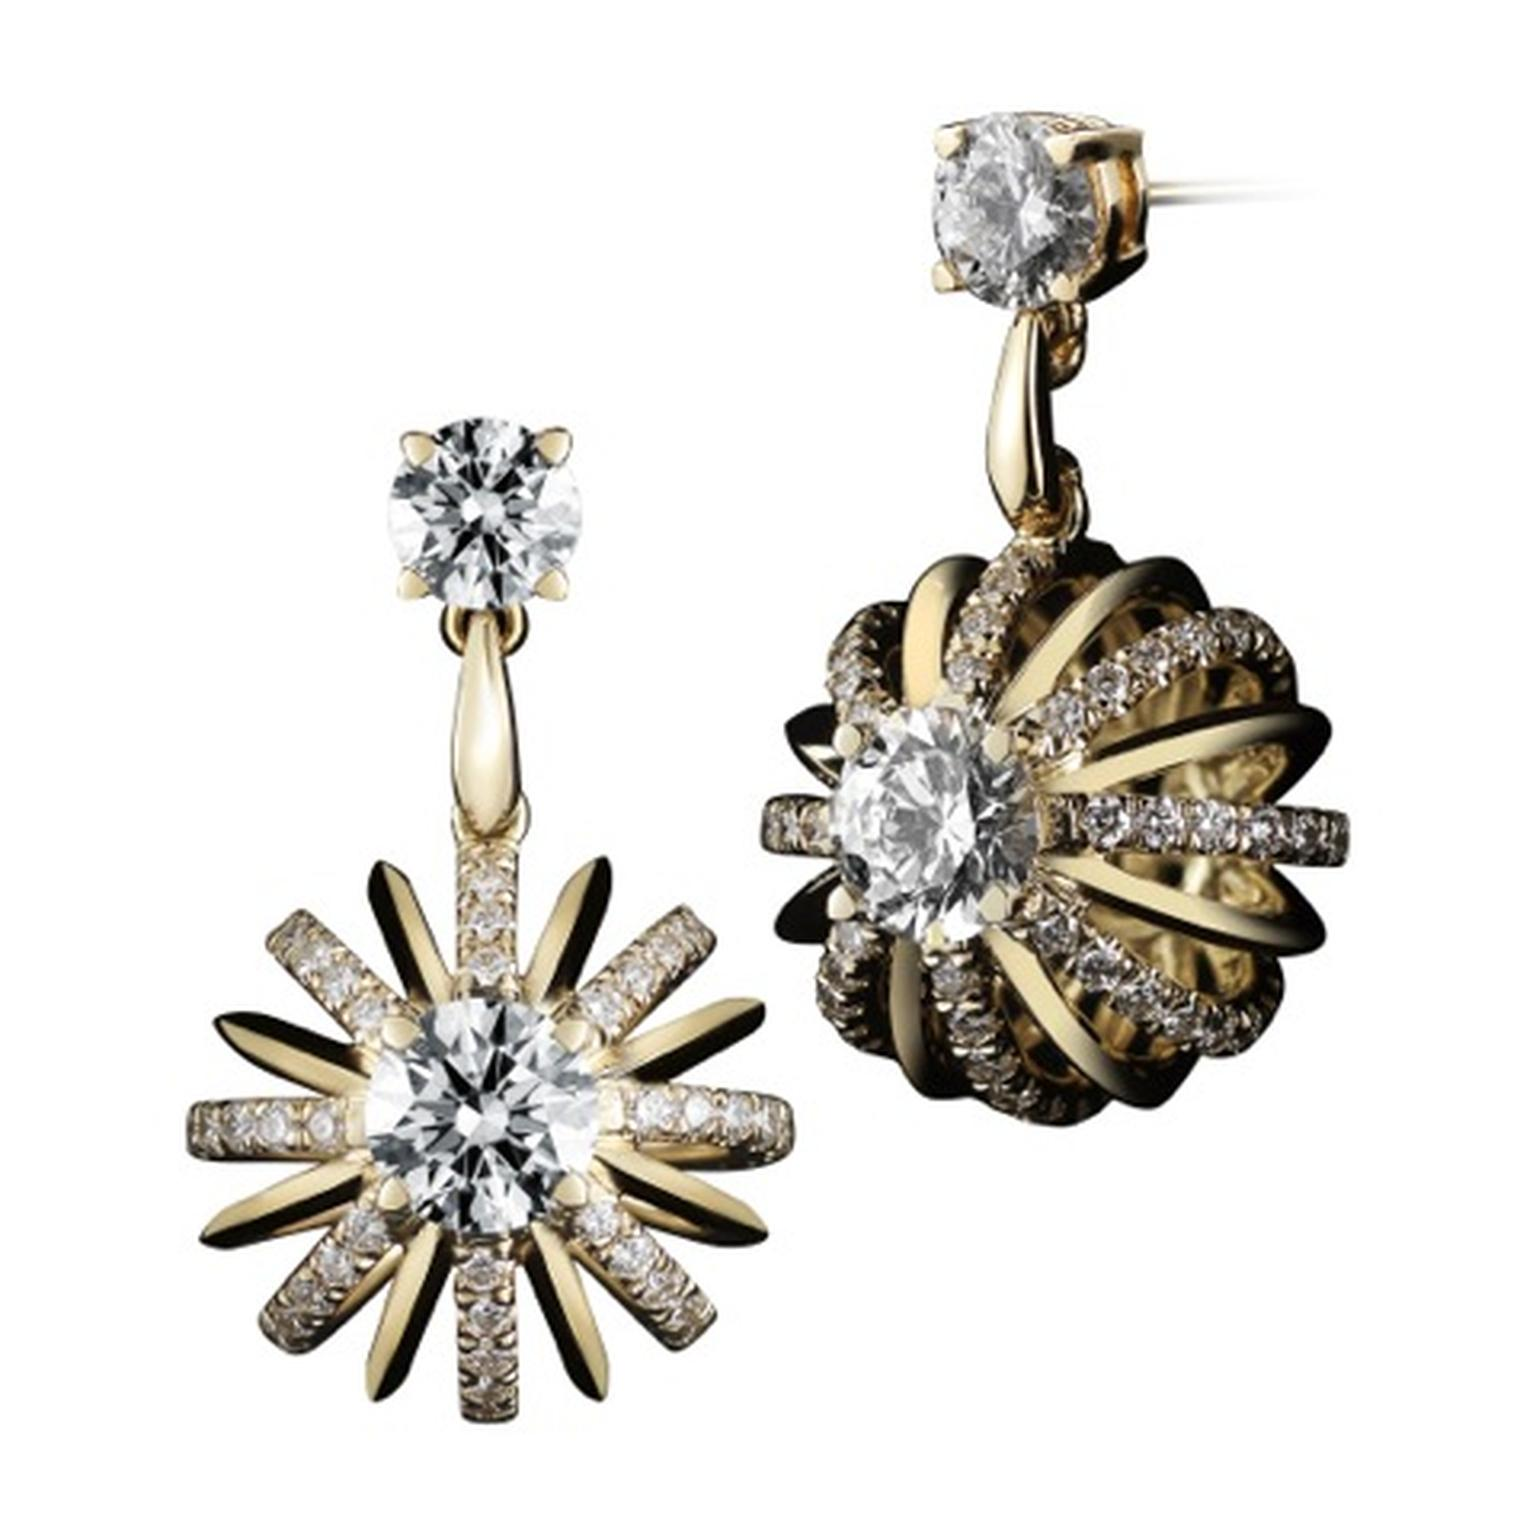 Alexandra Mor earrings featuring the designer's signature floating diamond melee and knife-edged wire.